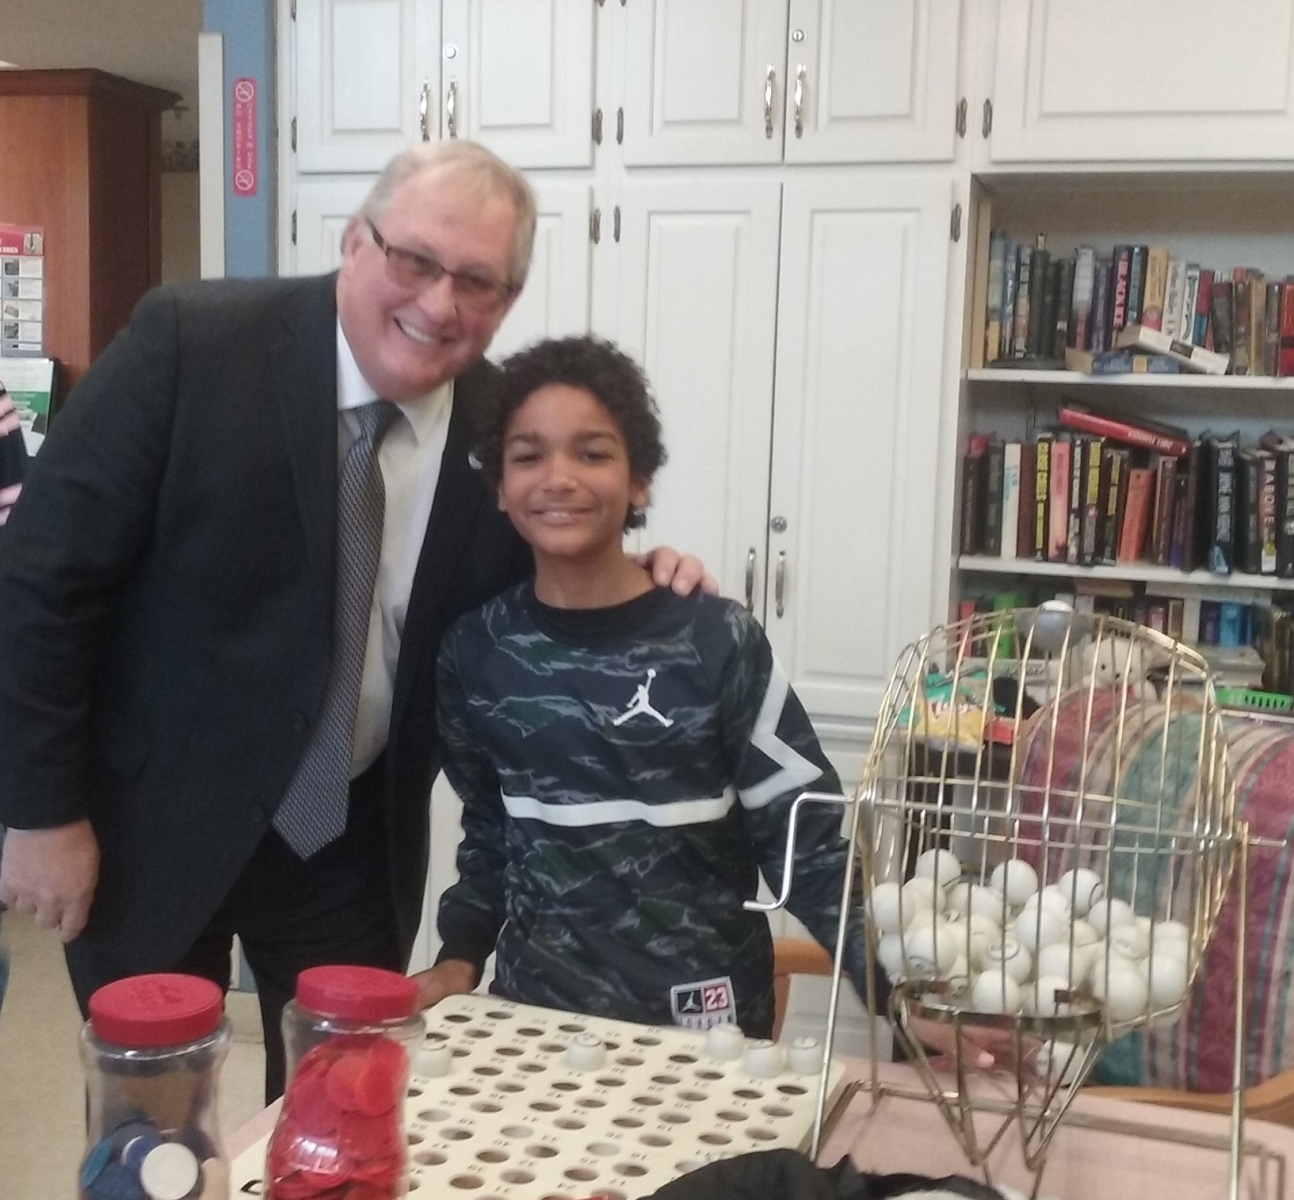 Spring-Grove-Bingo-with-New-Providence-Mayor-Al-Morgan-and-Diversity-Committee-6